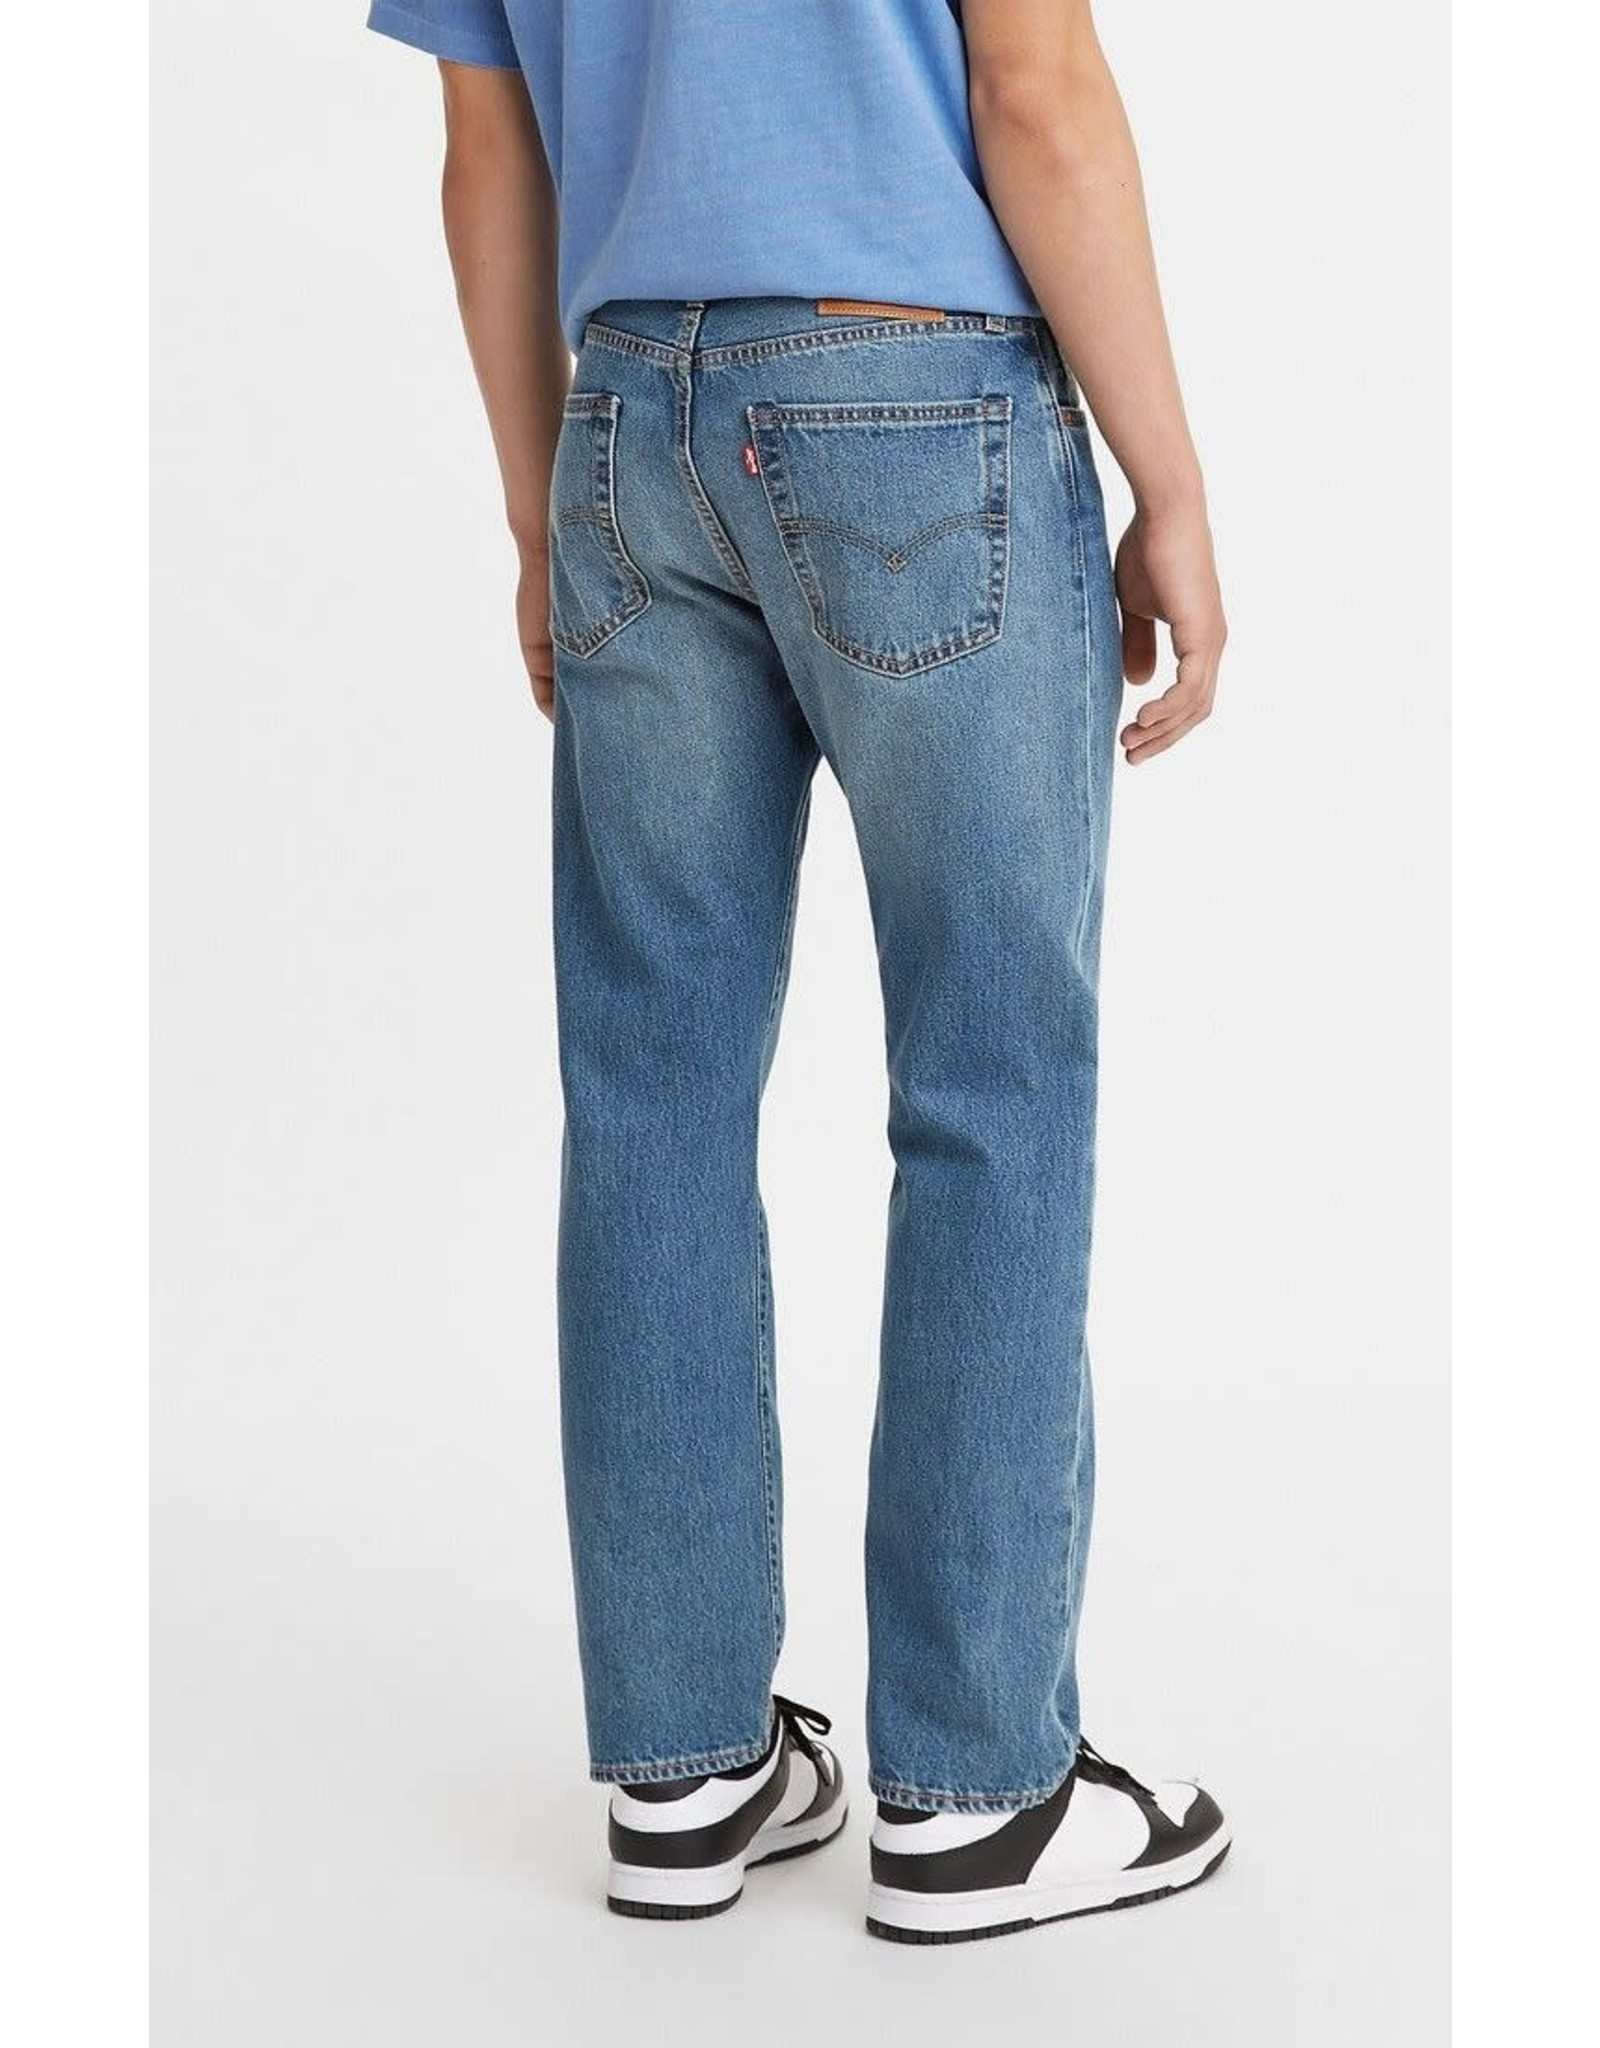 Levi's - 551Z Authentic Straight Boot Boogie